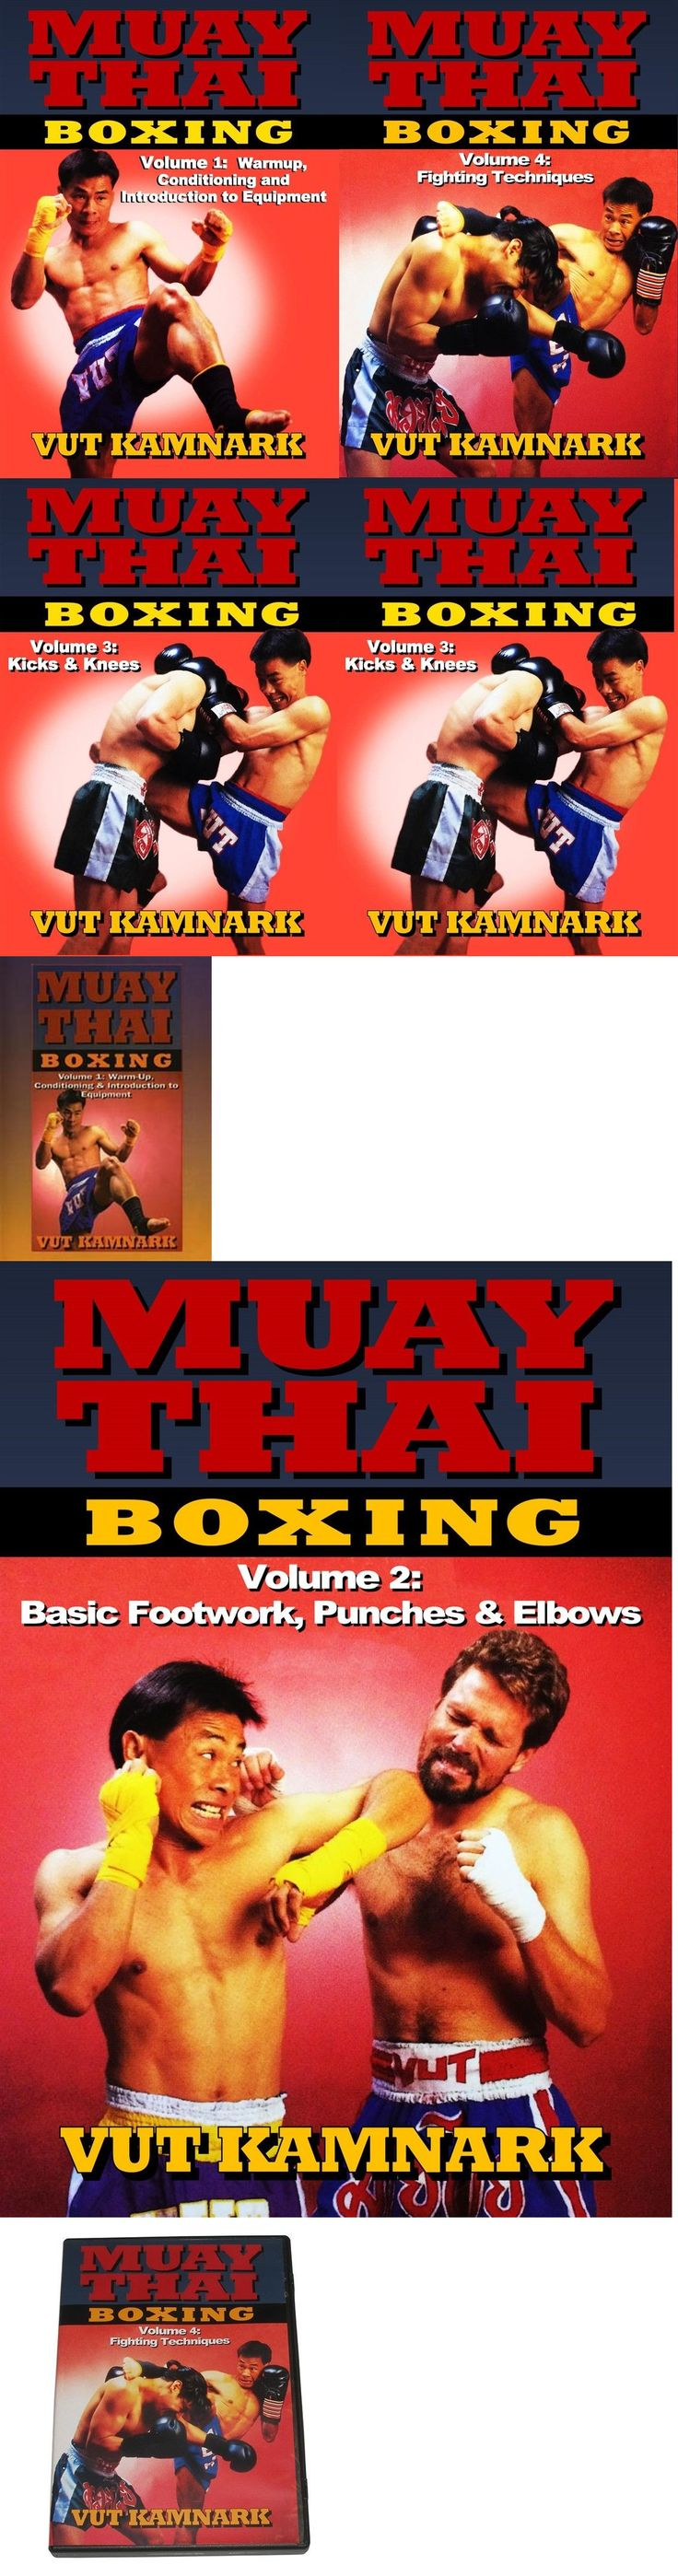 DVDs Videos and Books 73991: 4 Dvd Set Muay Thai Boxing Fighting Techniques Combos Counters Dvd Vut Kamnark -> BUY IT NOW ONLY: $79.95 on eBay!